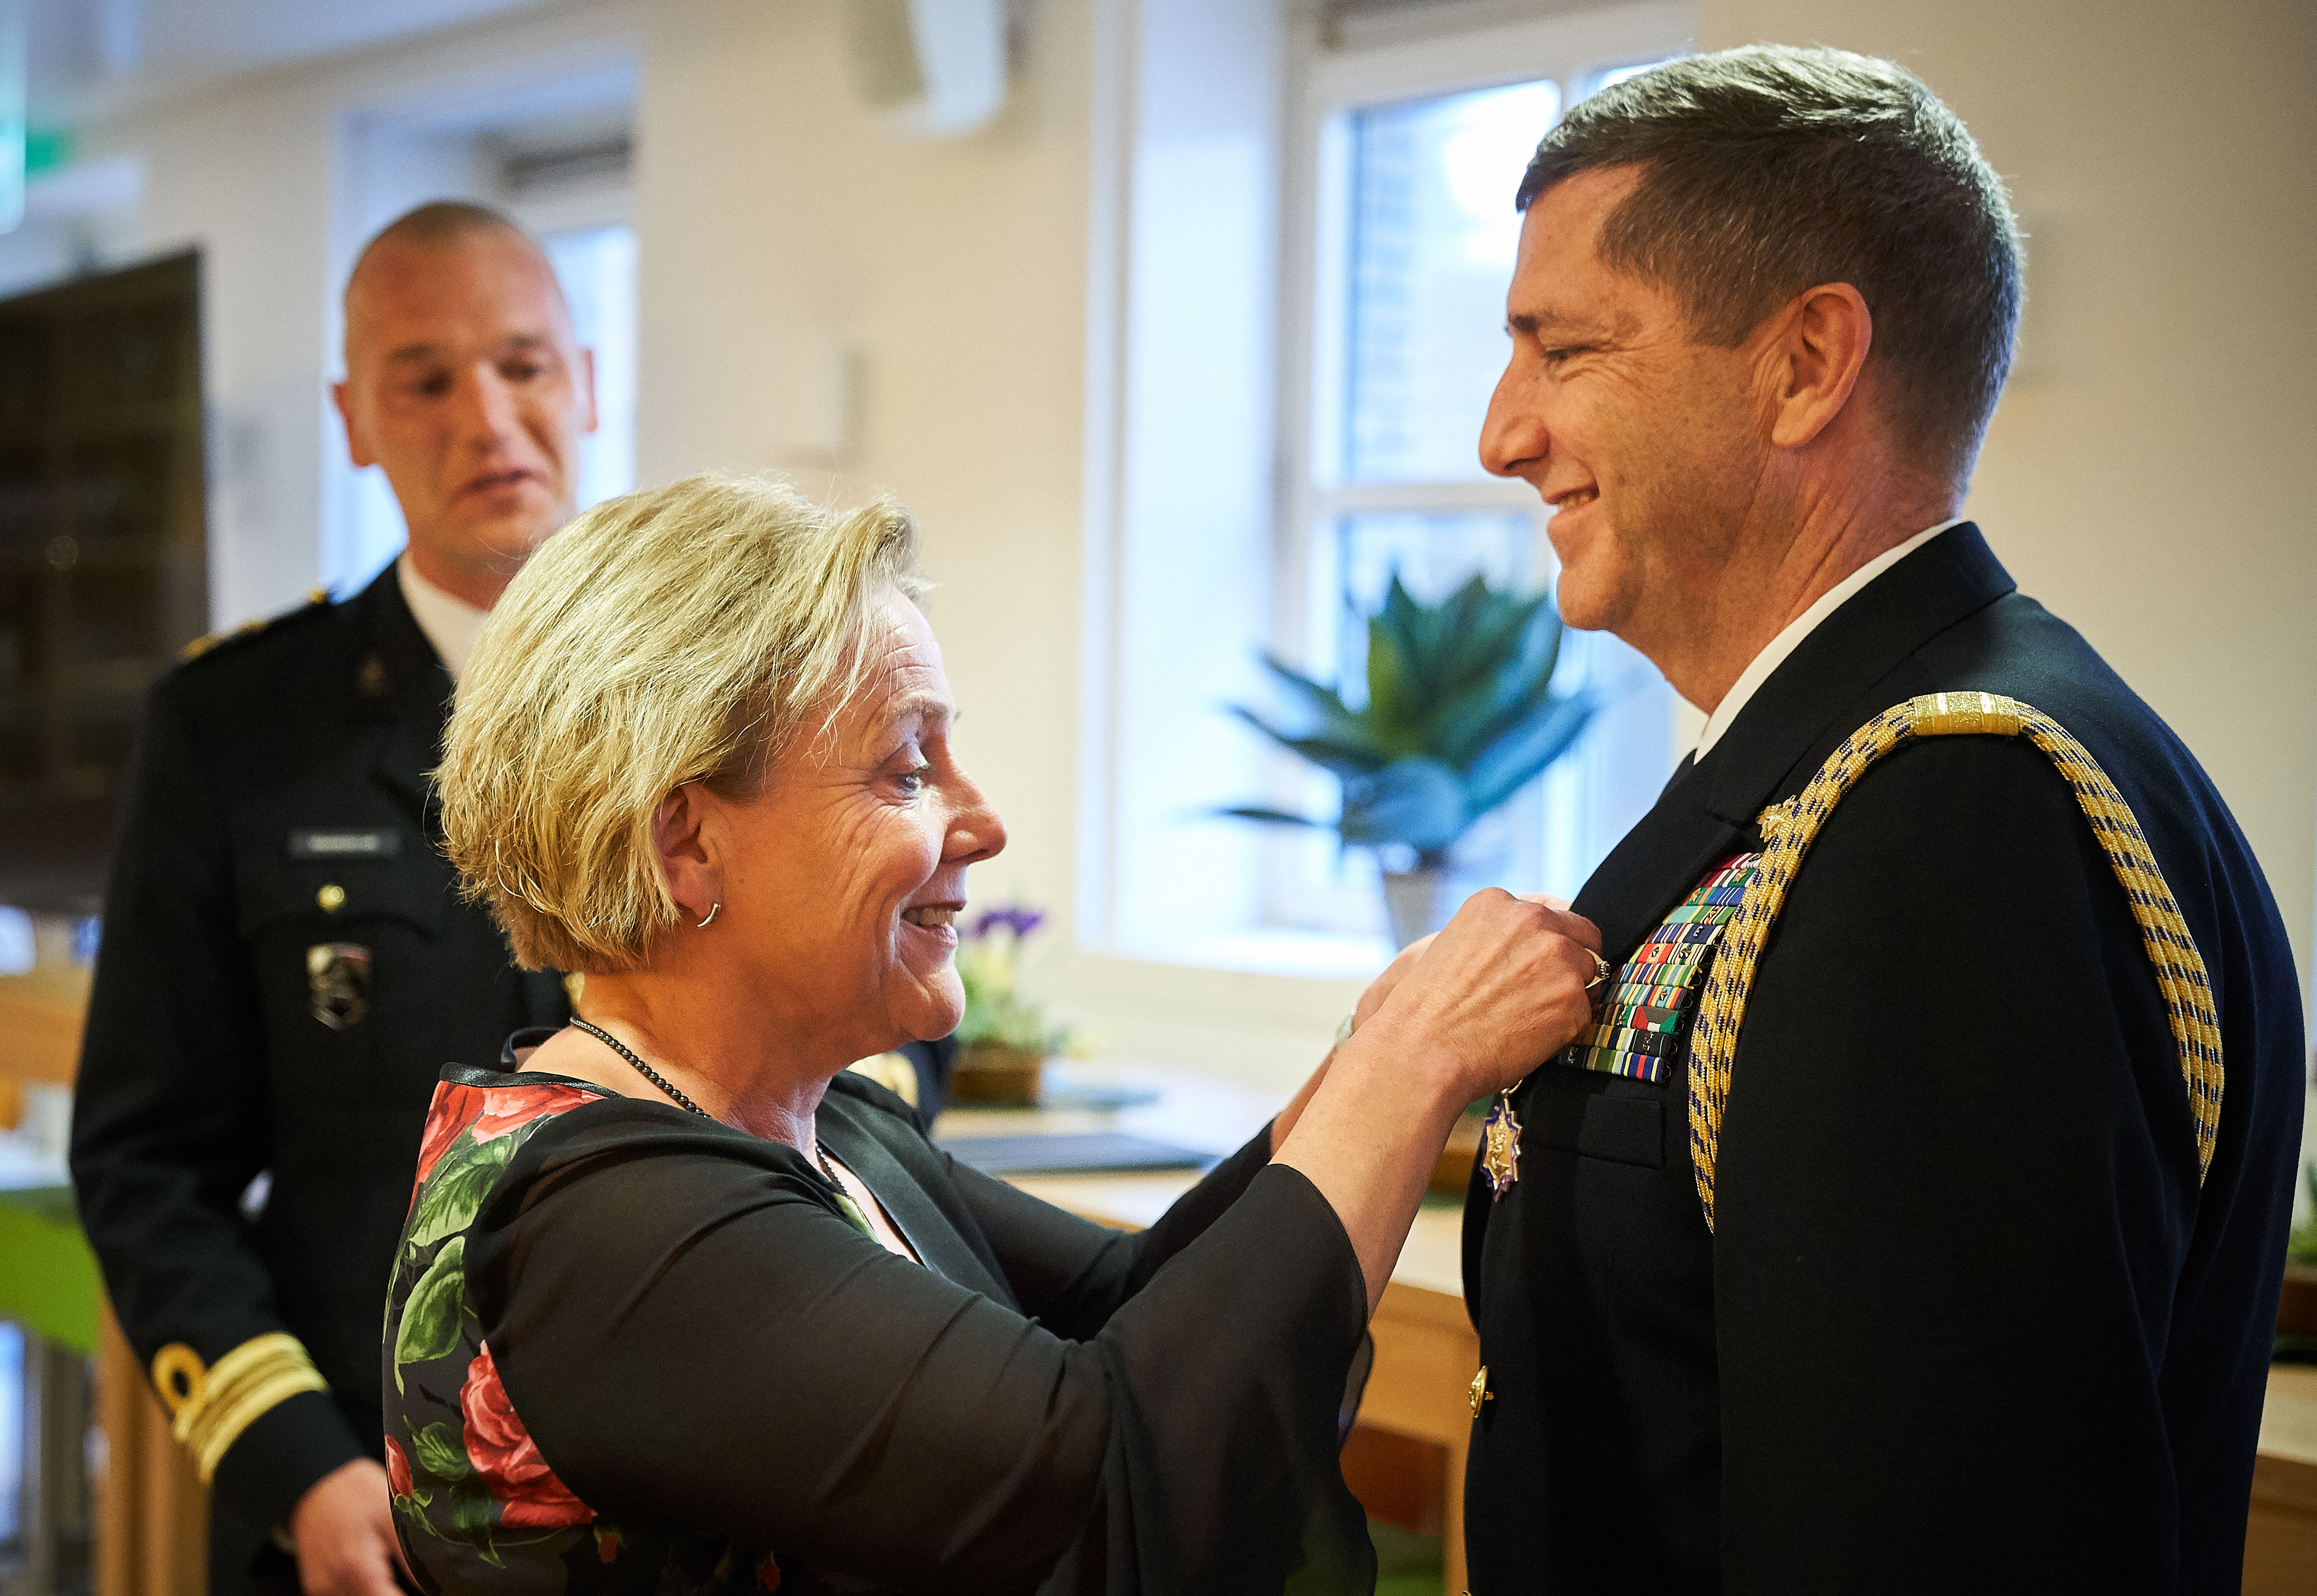 Netherlands Minister of Defense awards American Defense Attaché